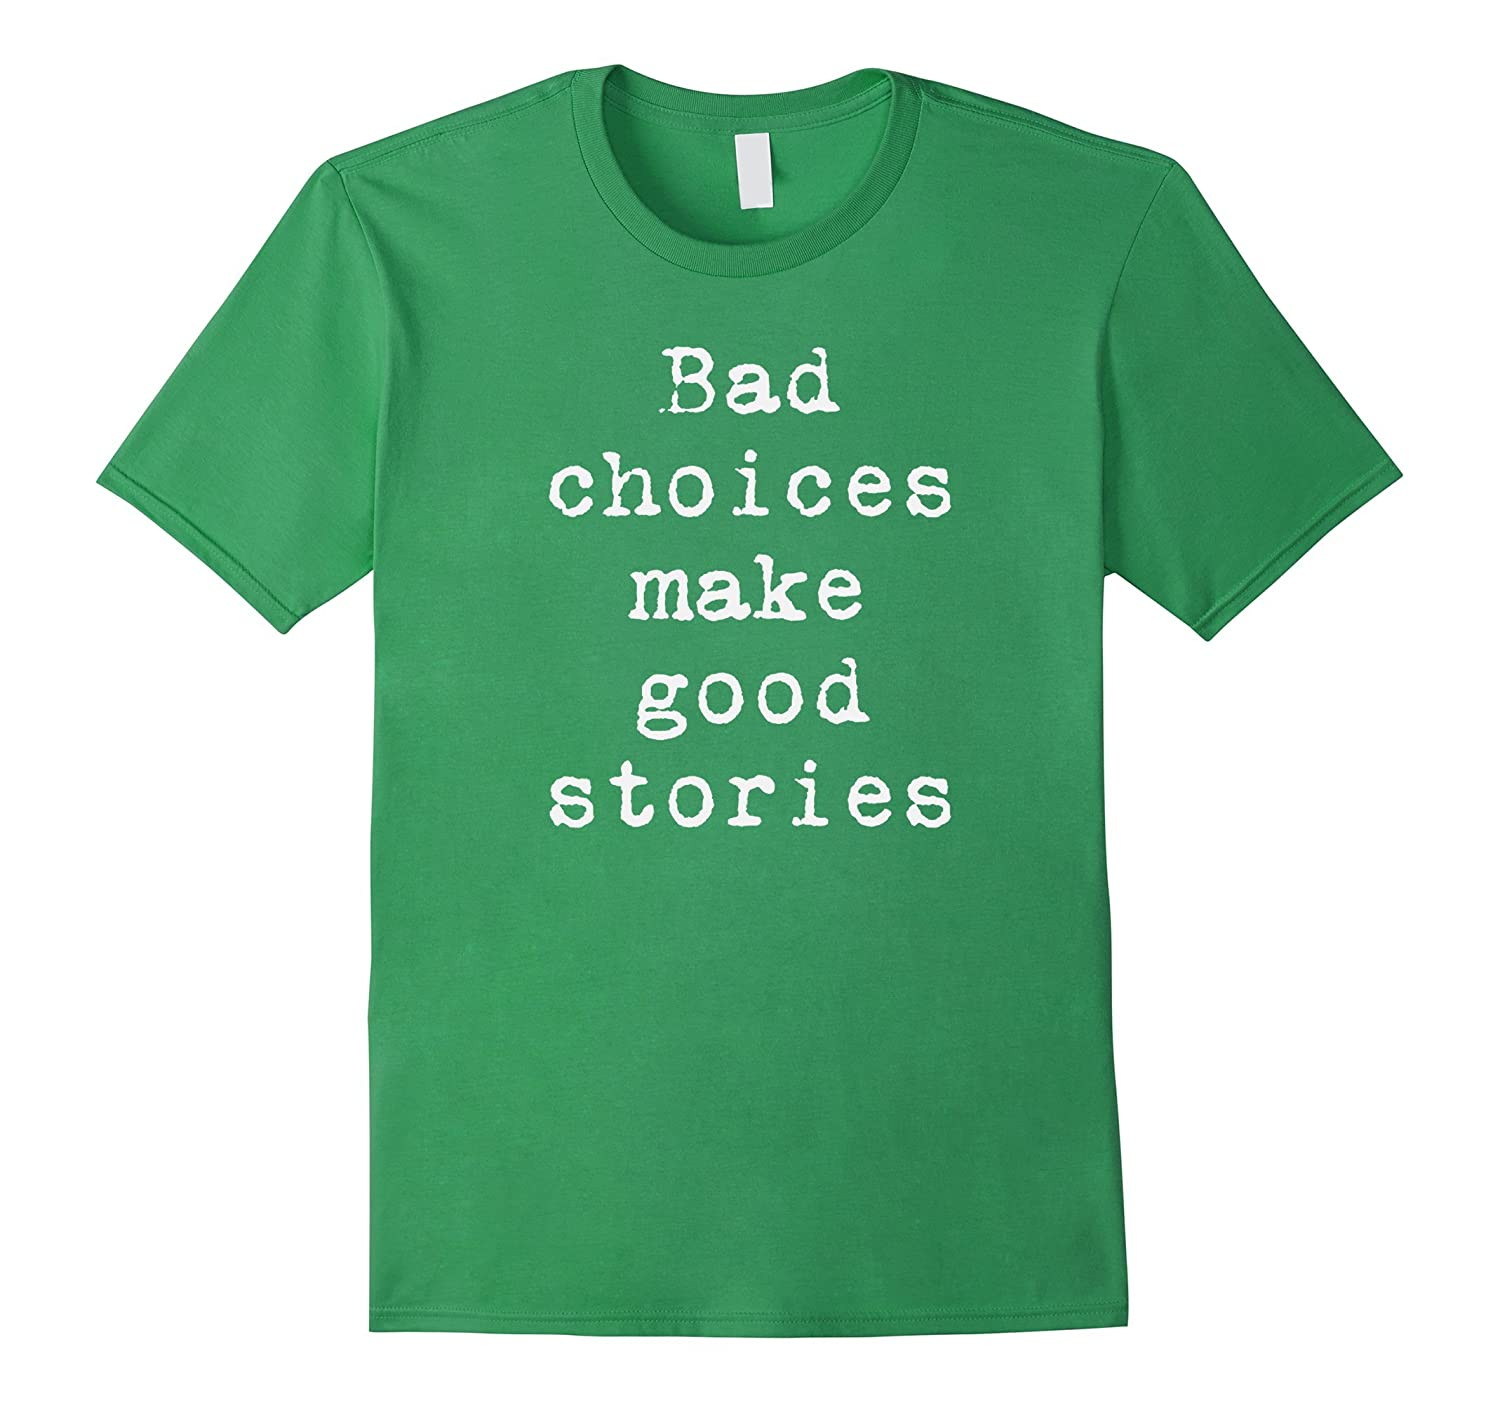 Bad choices make good stories witty funny t-shirt-TD